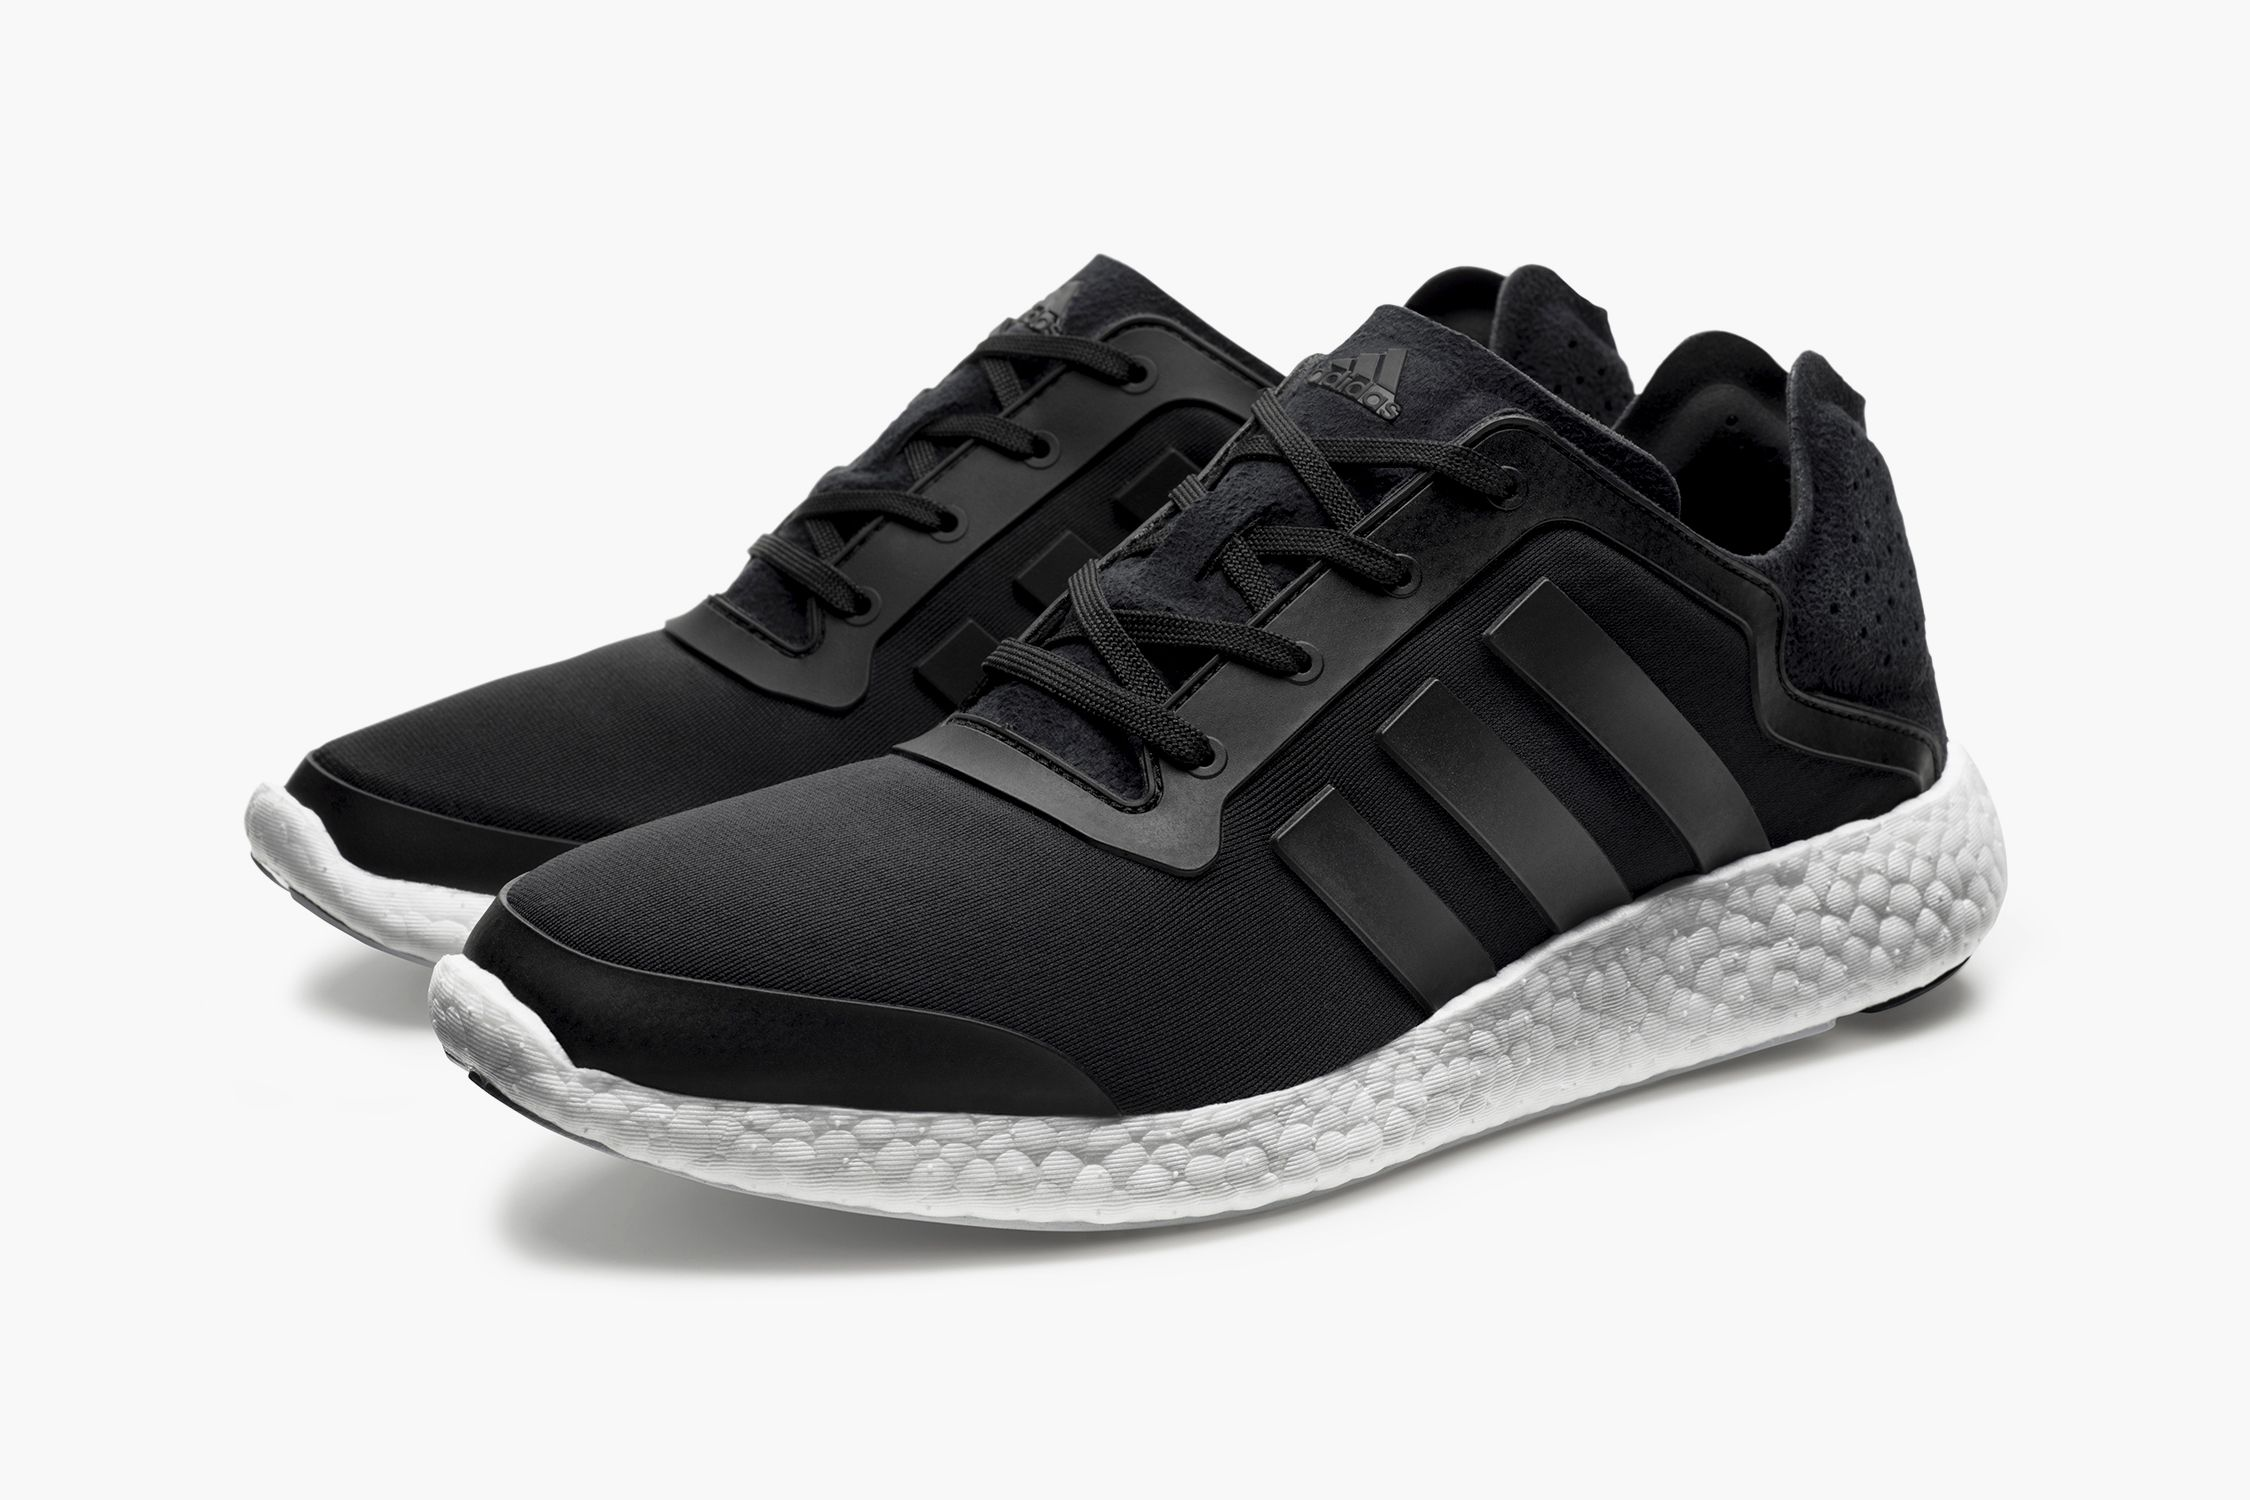 Pure Boost Adidas Mens